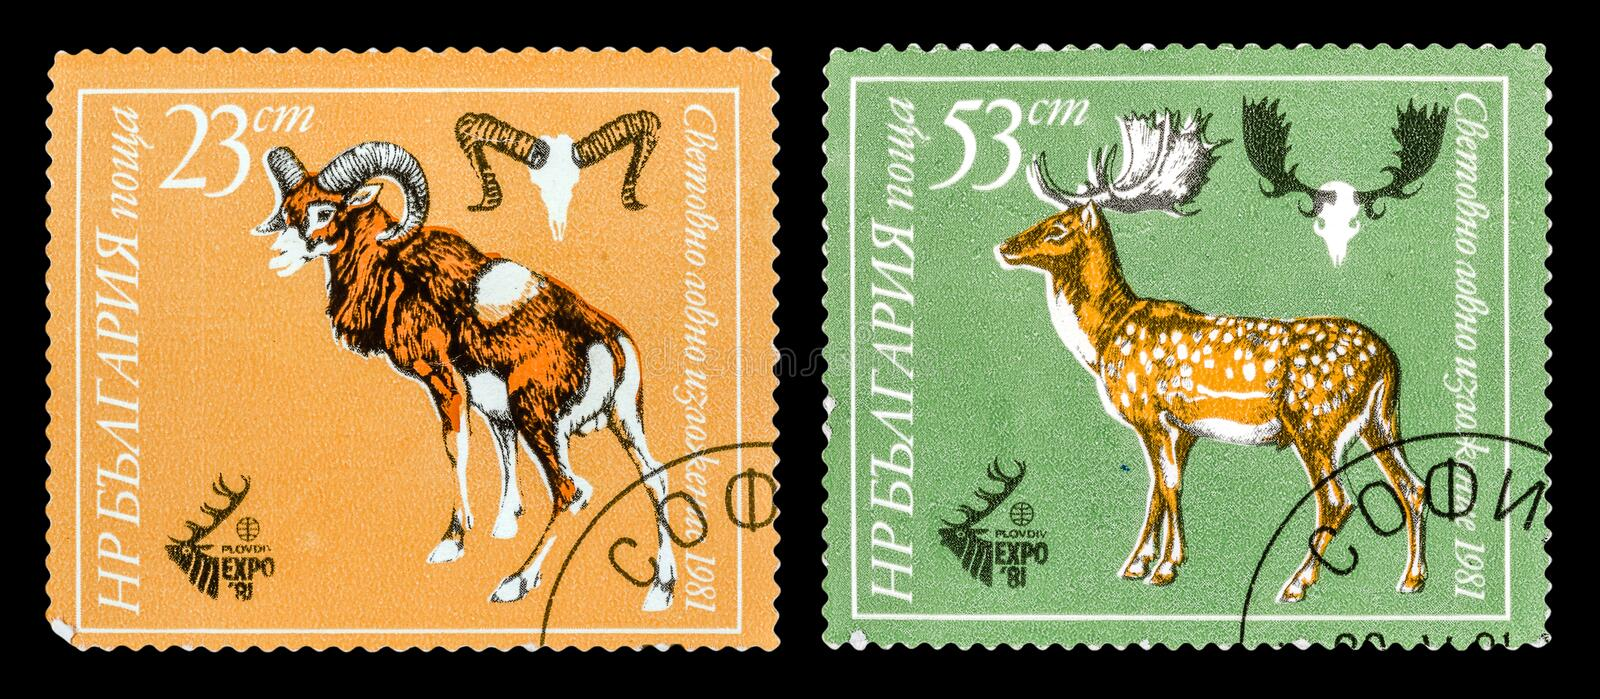 The Postage Stamp royalty free stock images